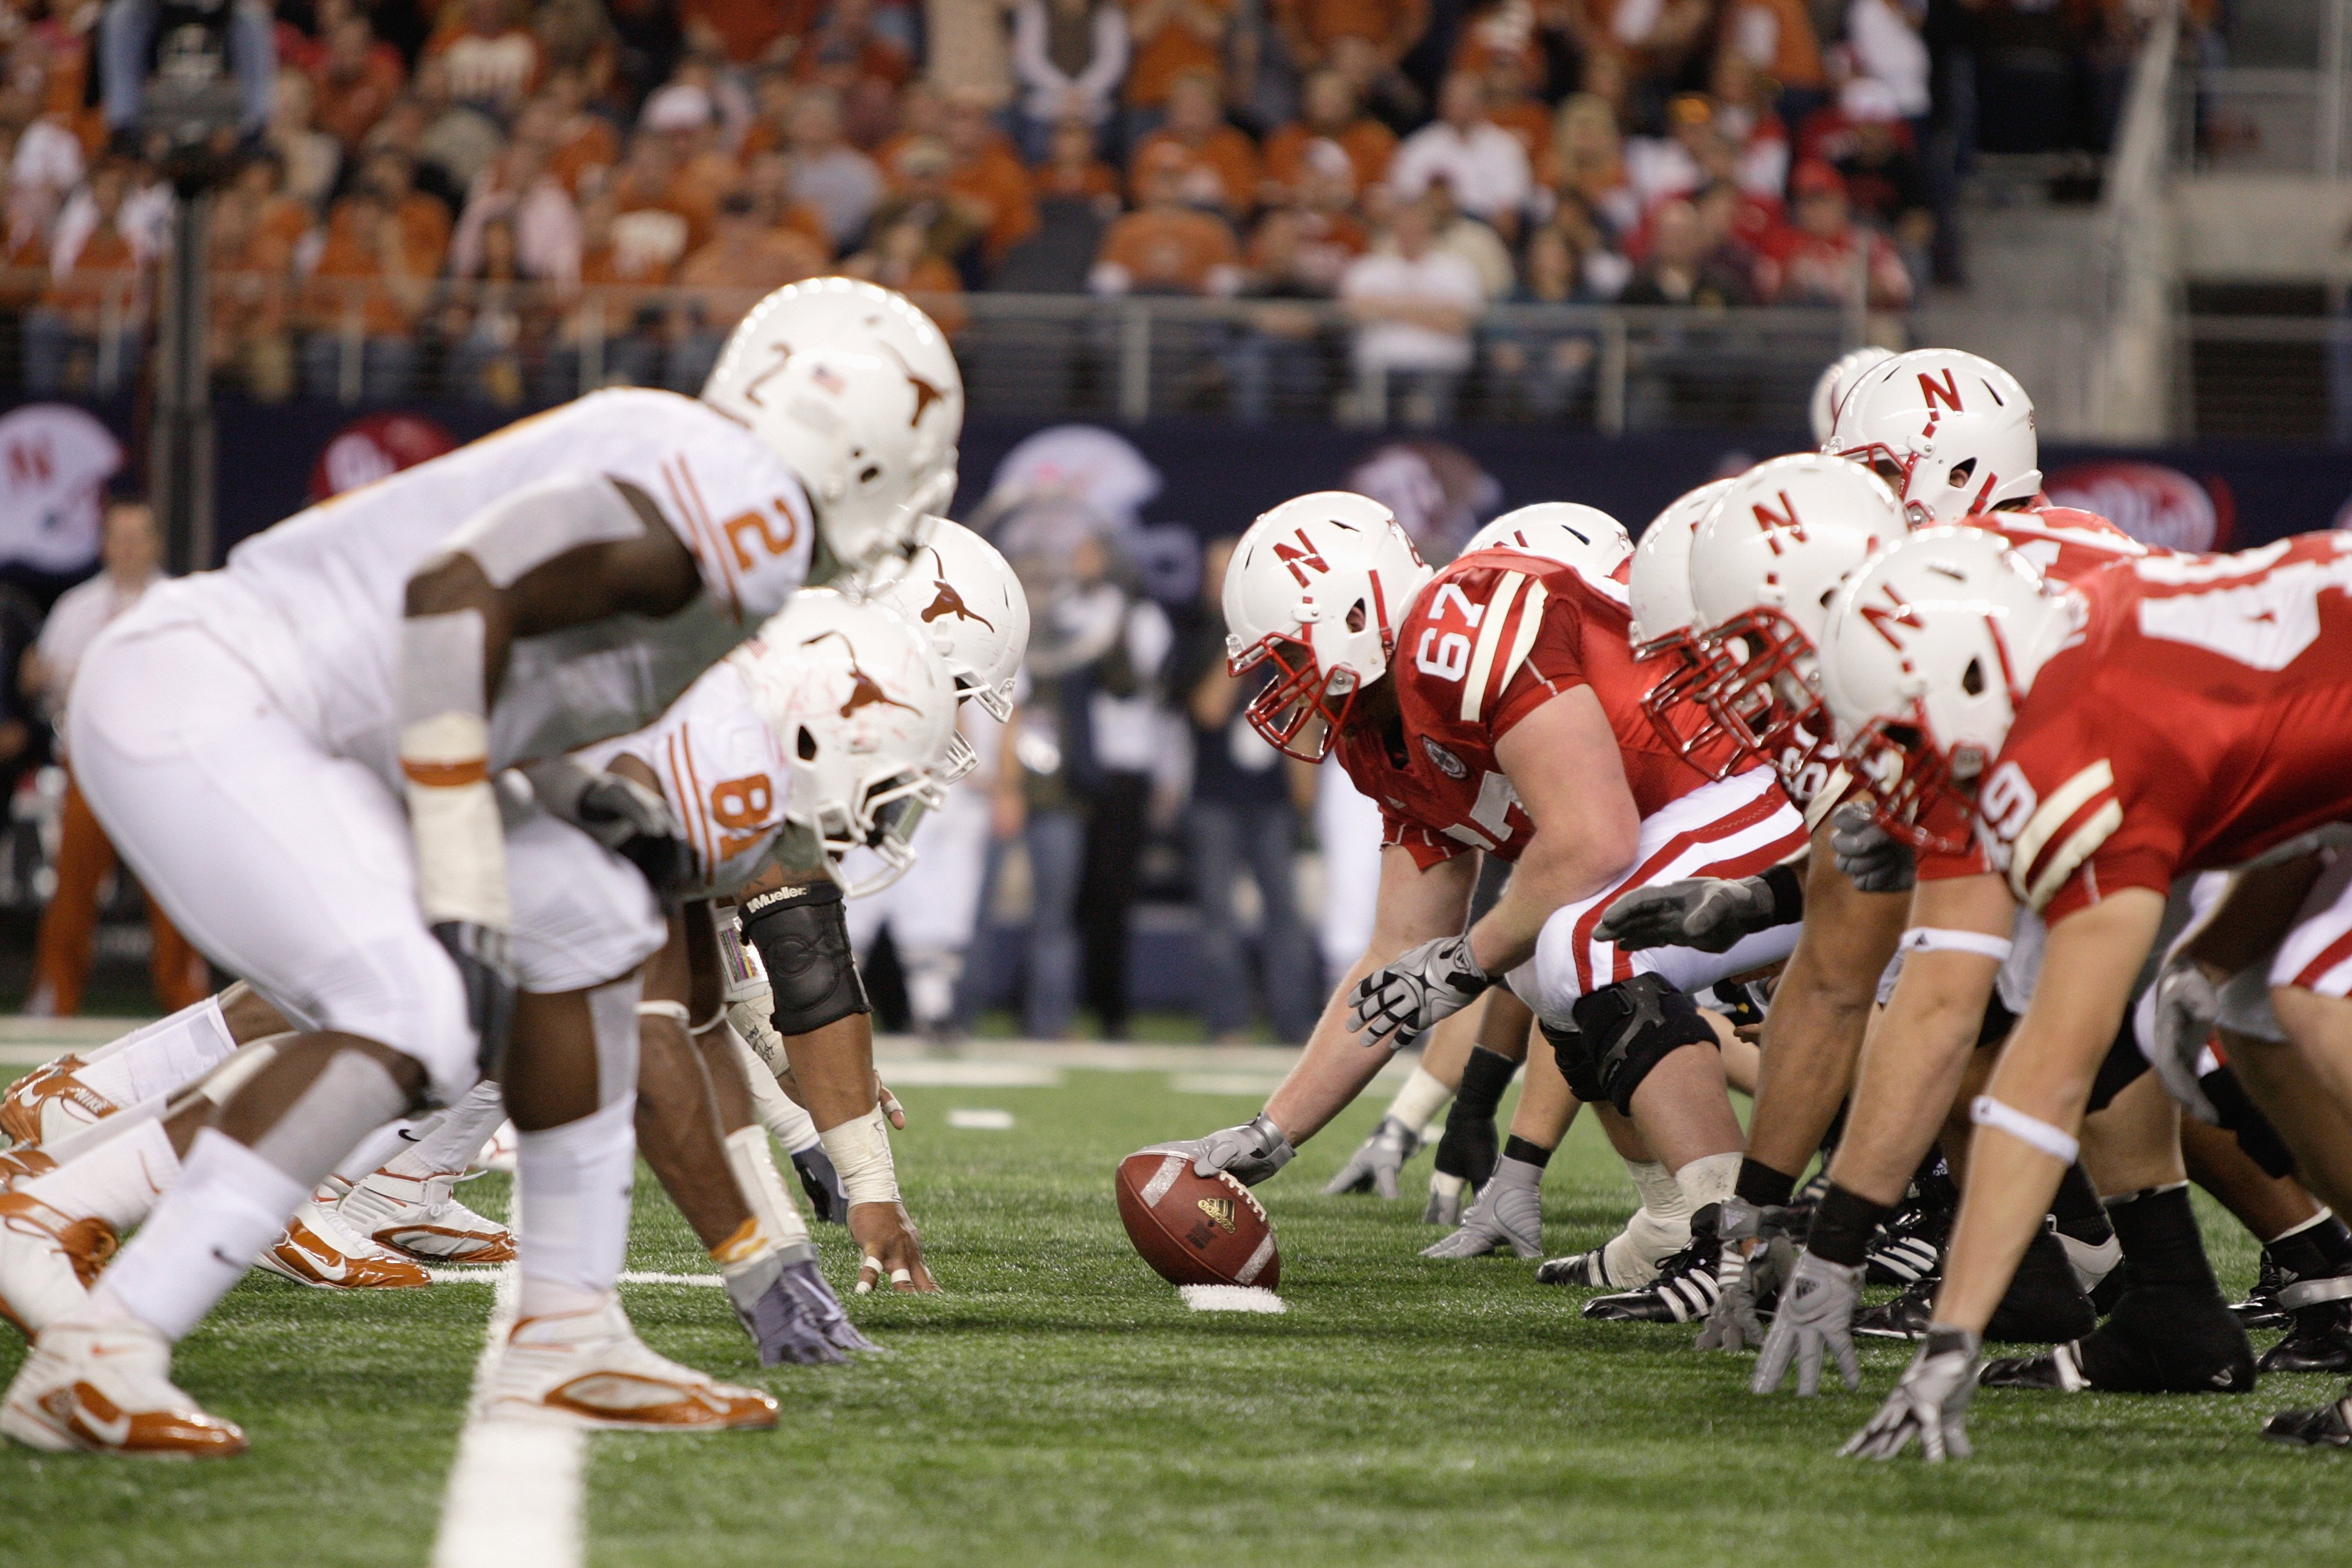 ARLINGTON, TX - DECEMBER 5: Sam Meginnis #67 of the Nebraska Cornhuskers gets ready to hike the ball during the Big 12 Football Championship game against the Texas Longhorns at Cowboys Stadium on December 5, 2009 in Arlington, Texas. (Photo by Jamie Squir